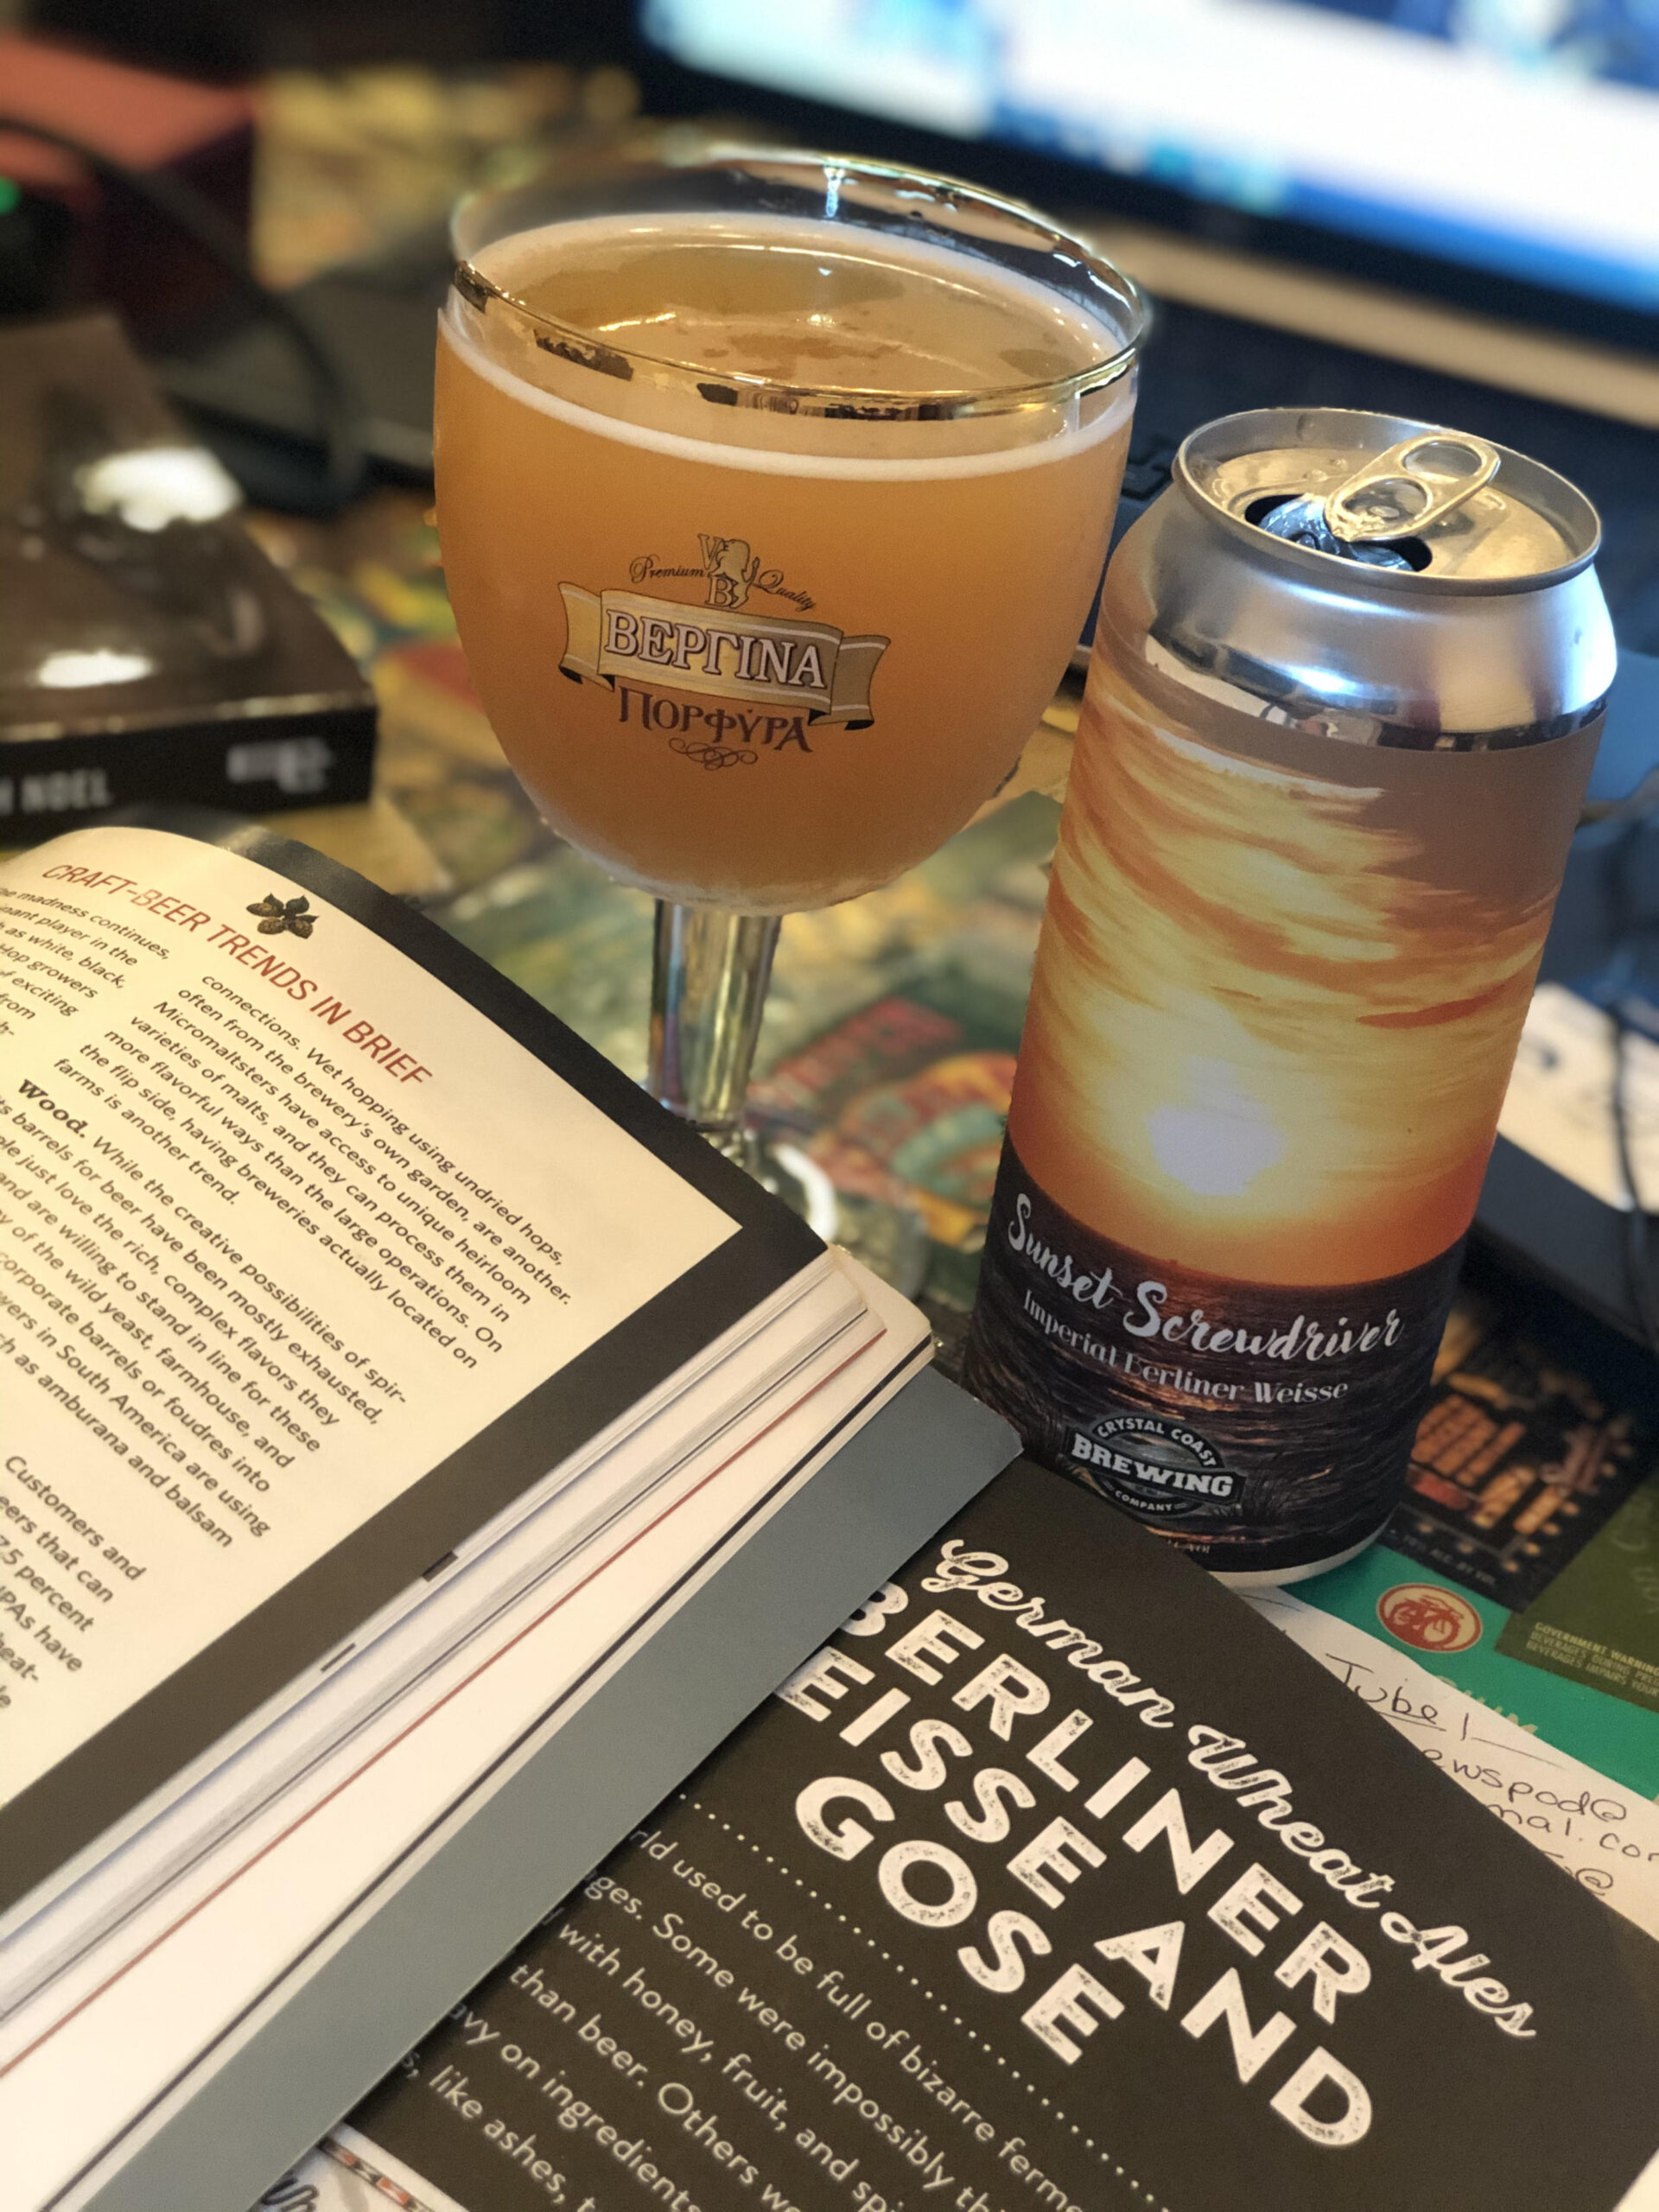 Sour beer from Crystal Coast Brewing